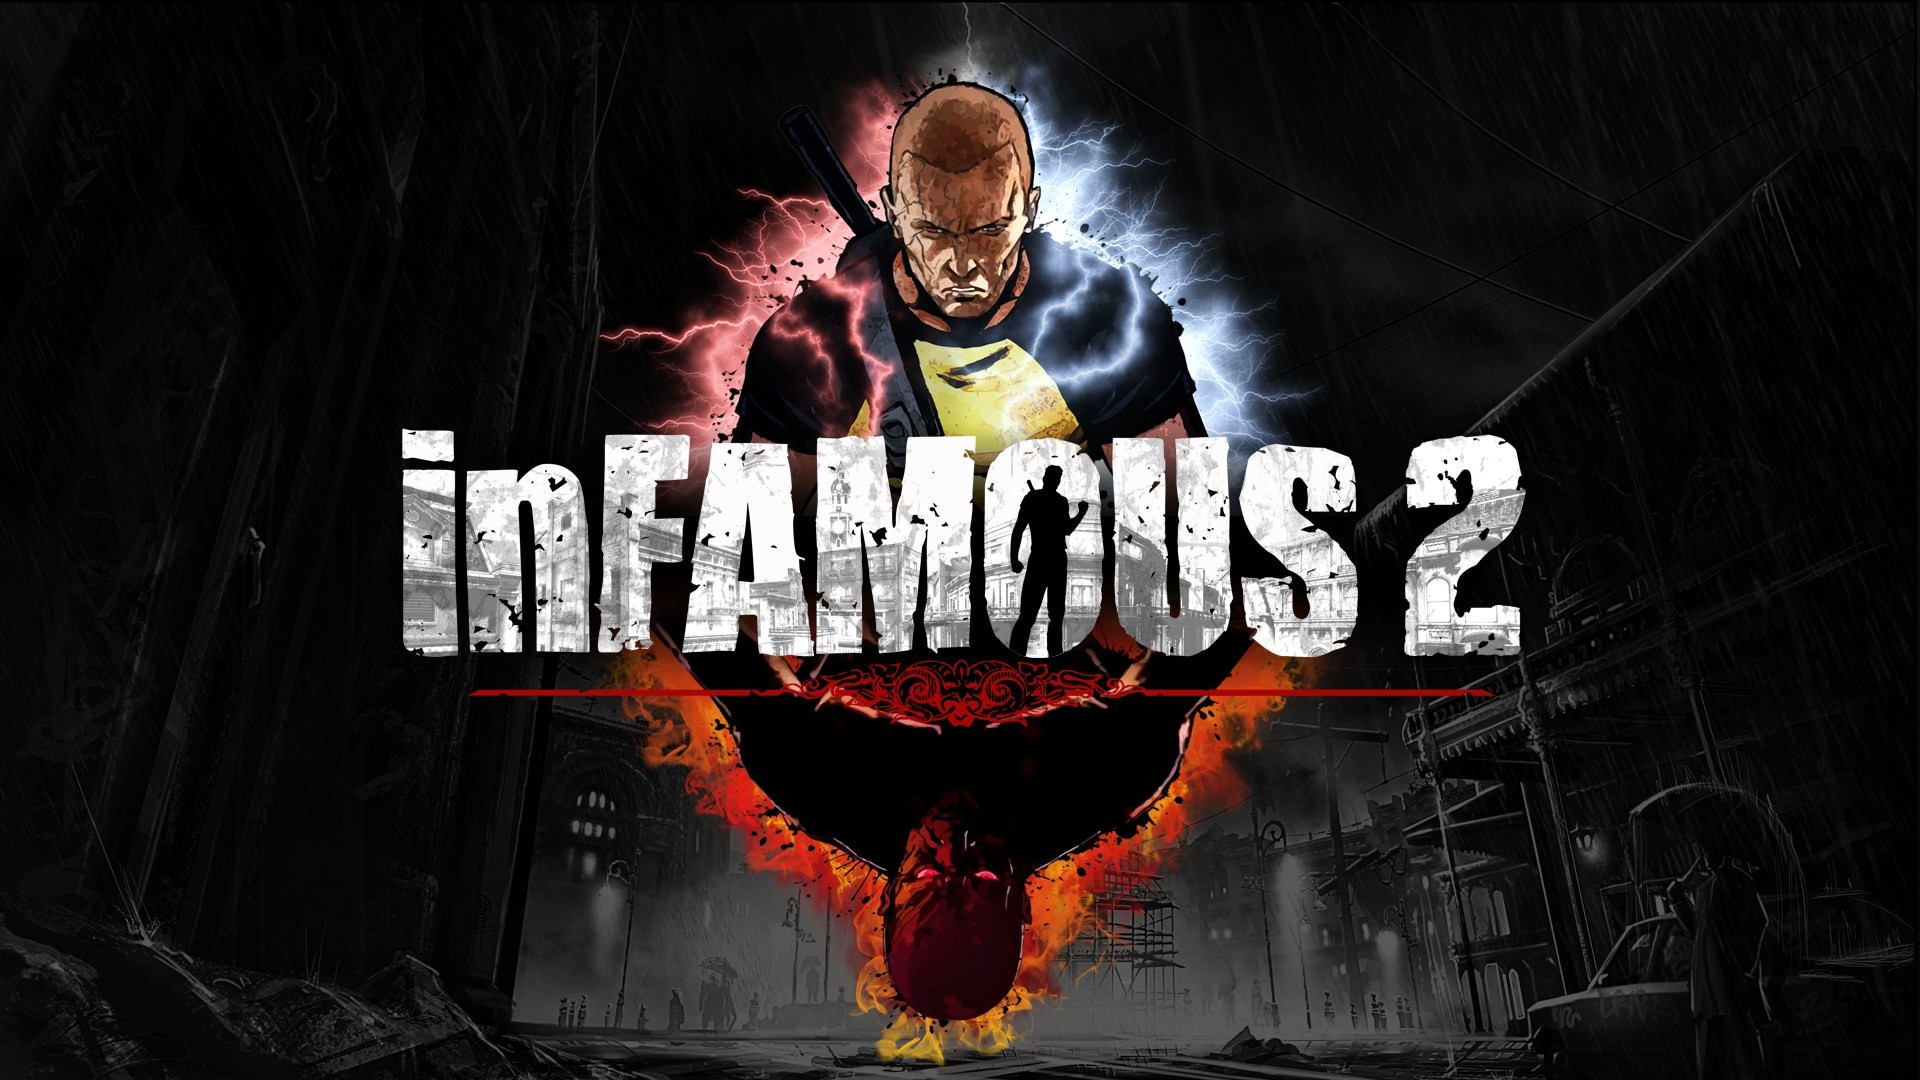 1920x1080 Video Game - inFAMOUS Wallpaper